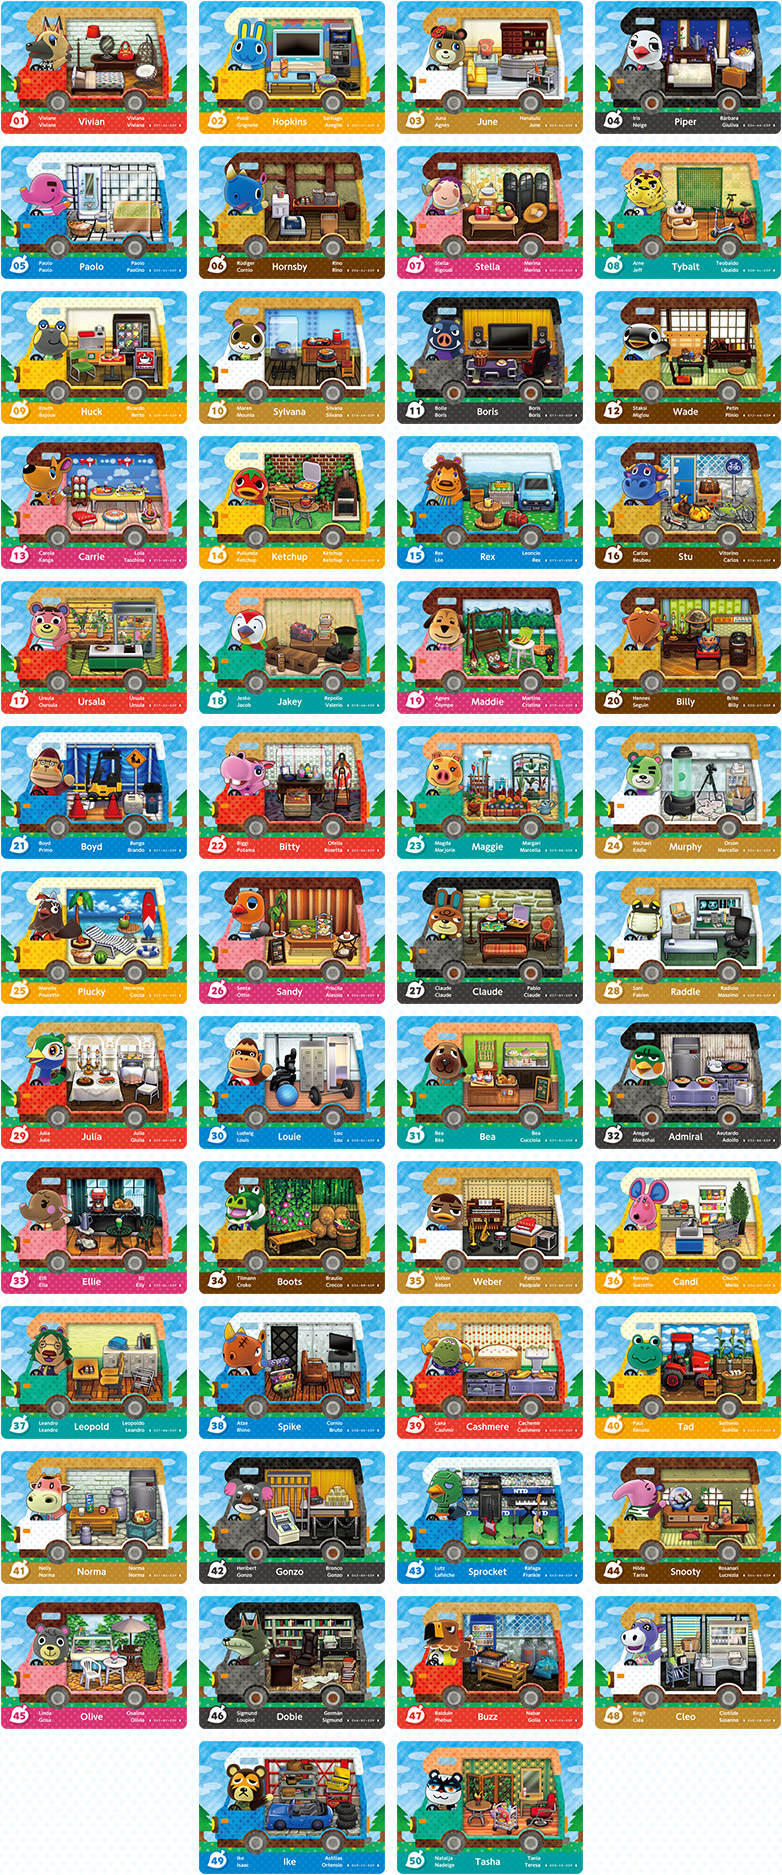 animal-crossing-welcome-amiibo-cards-overview